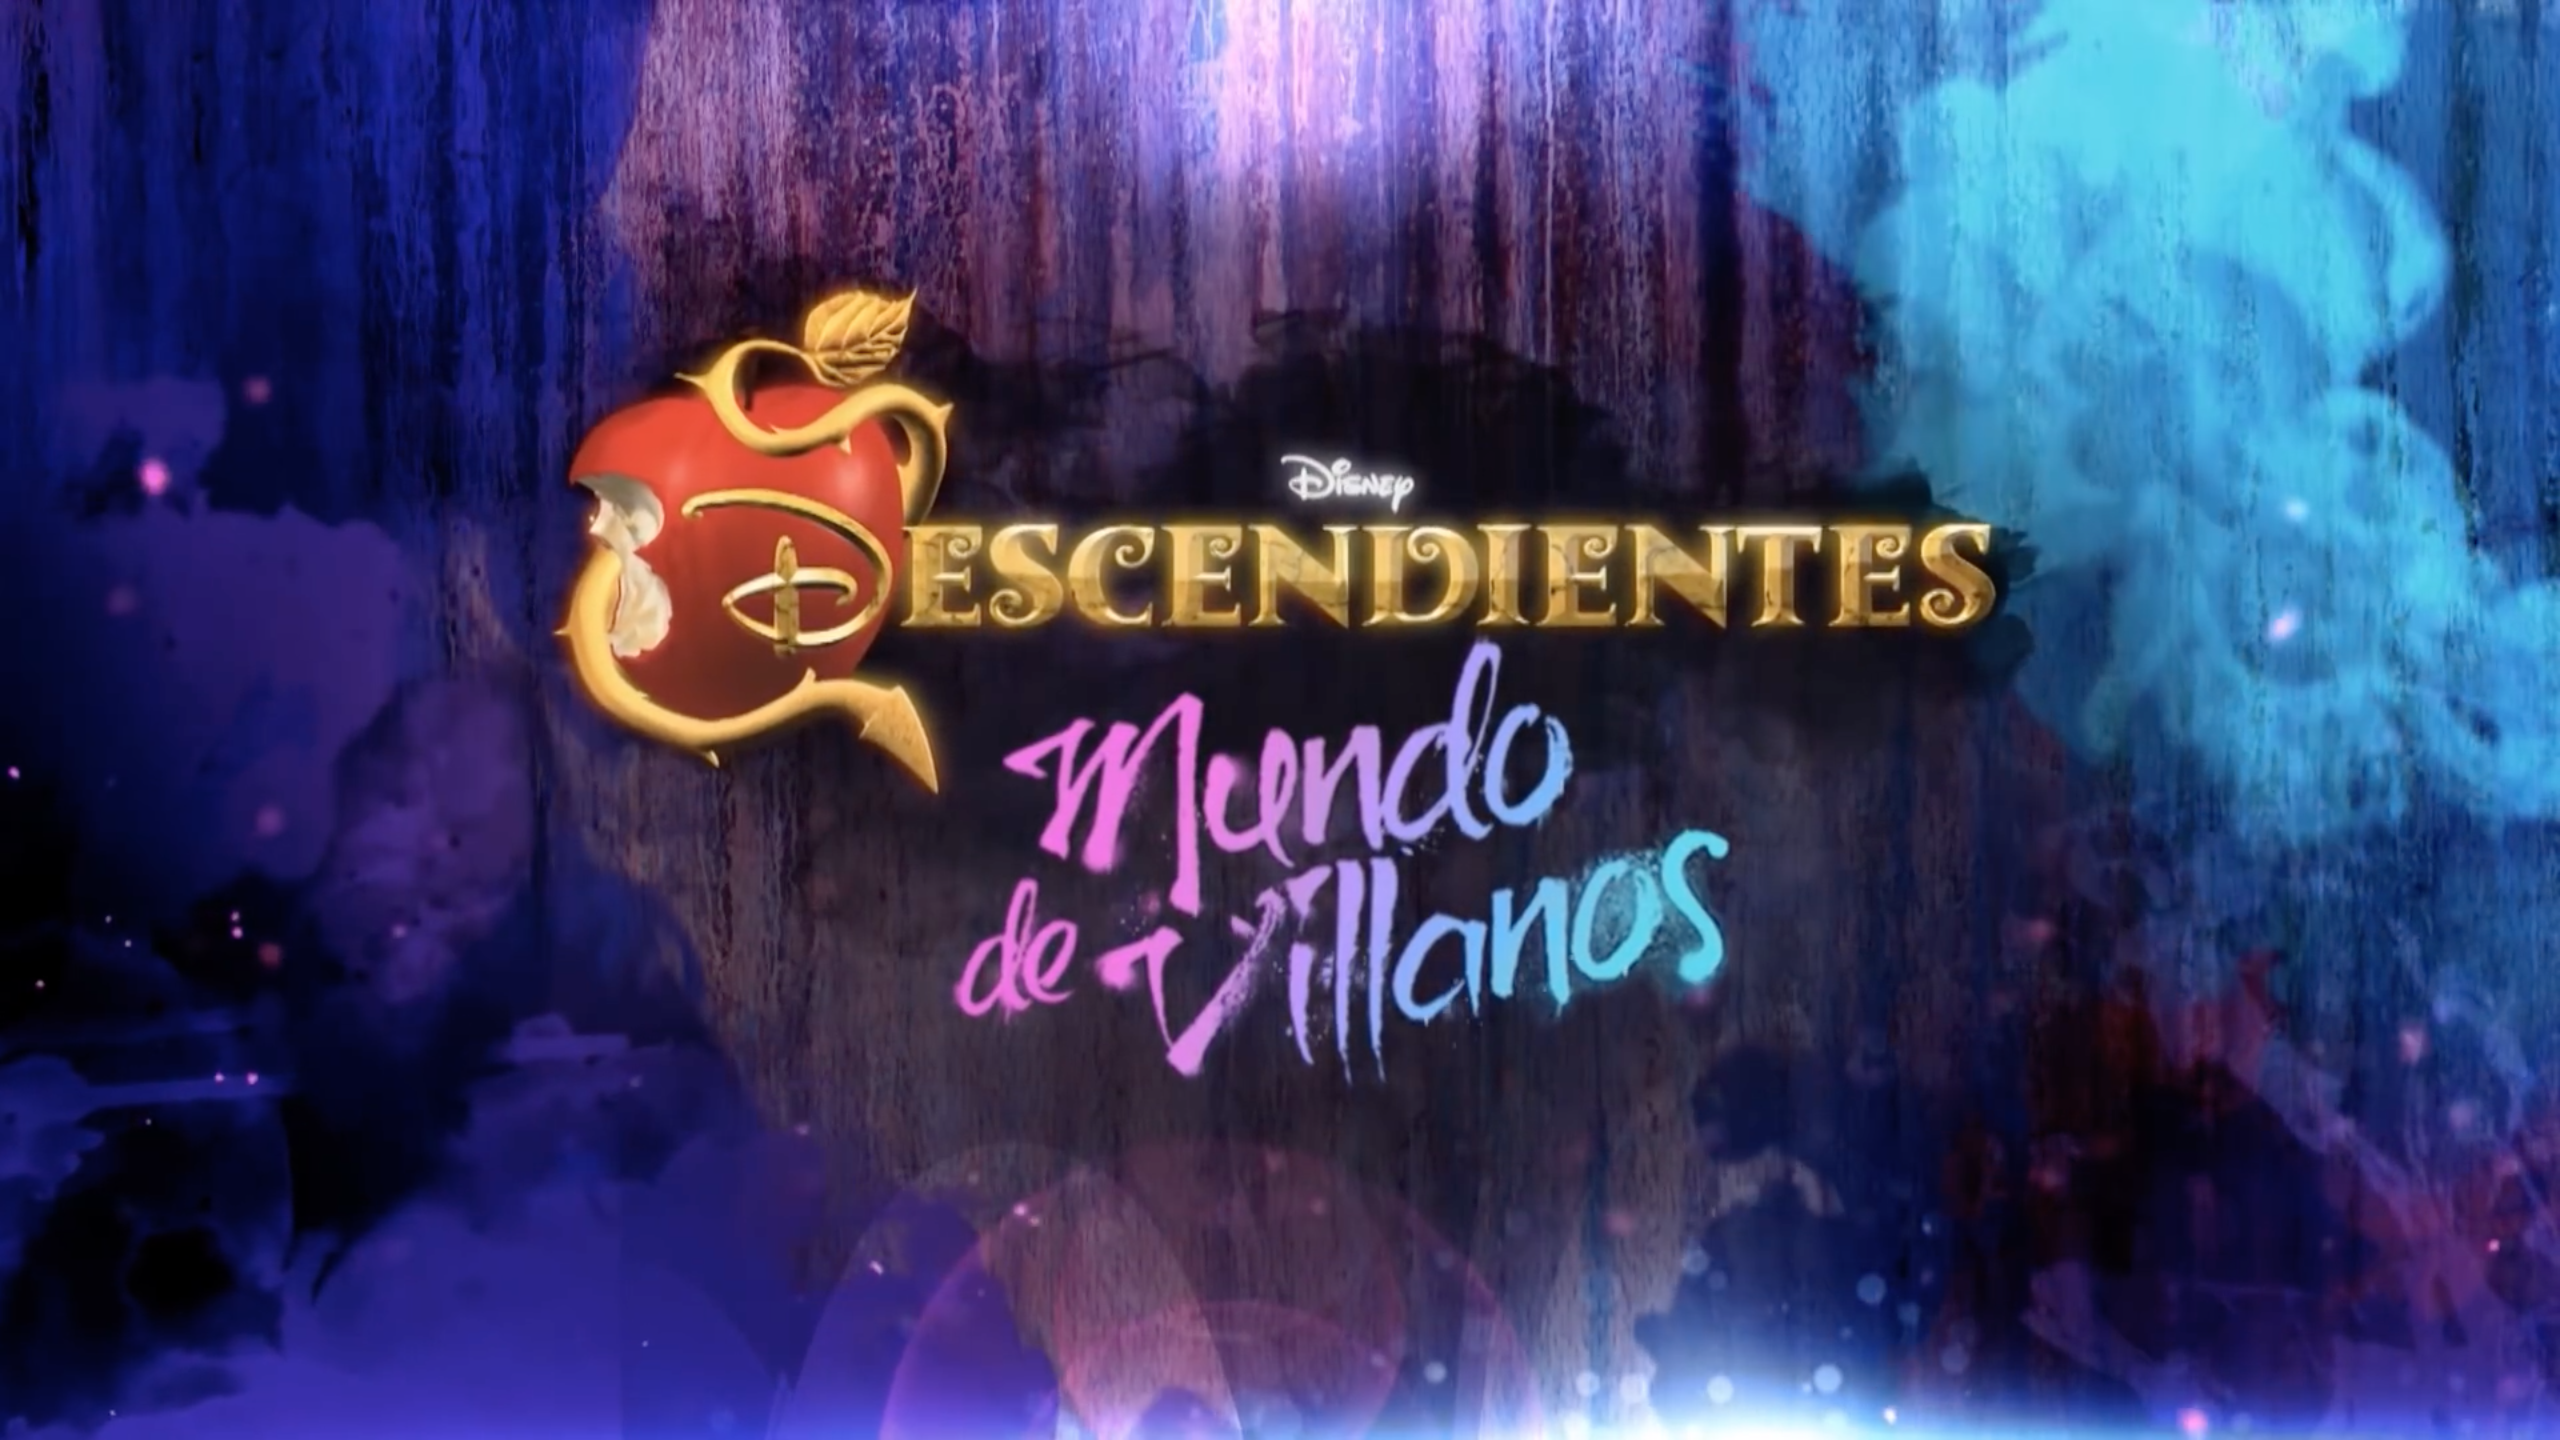 Descendientes: Mundo de villanos